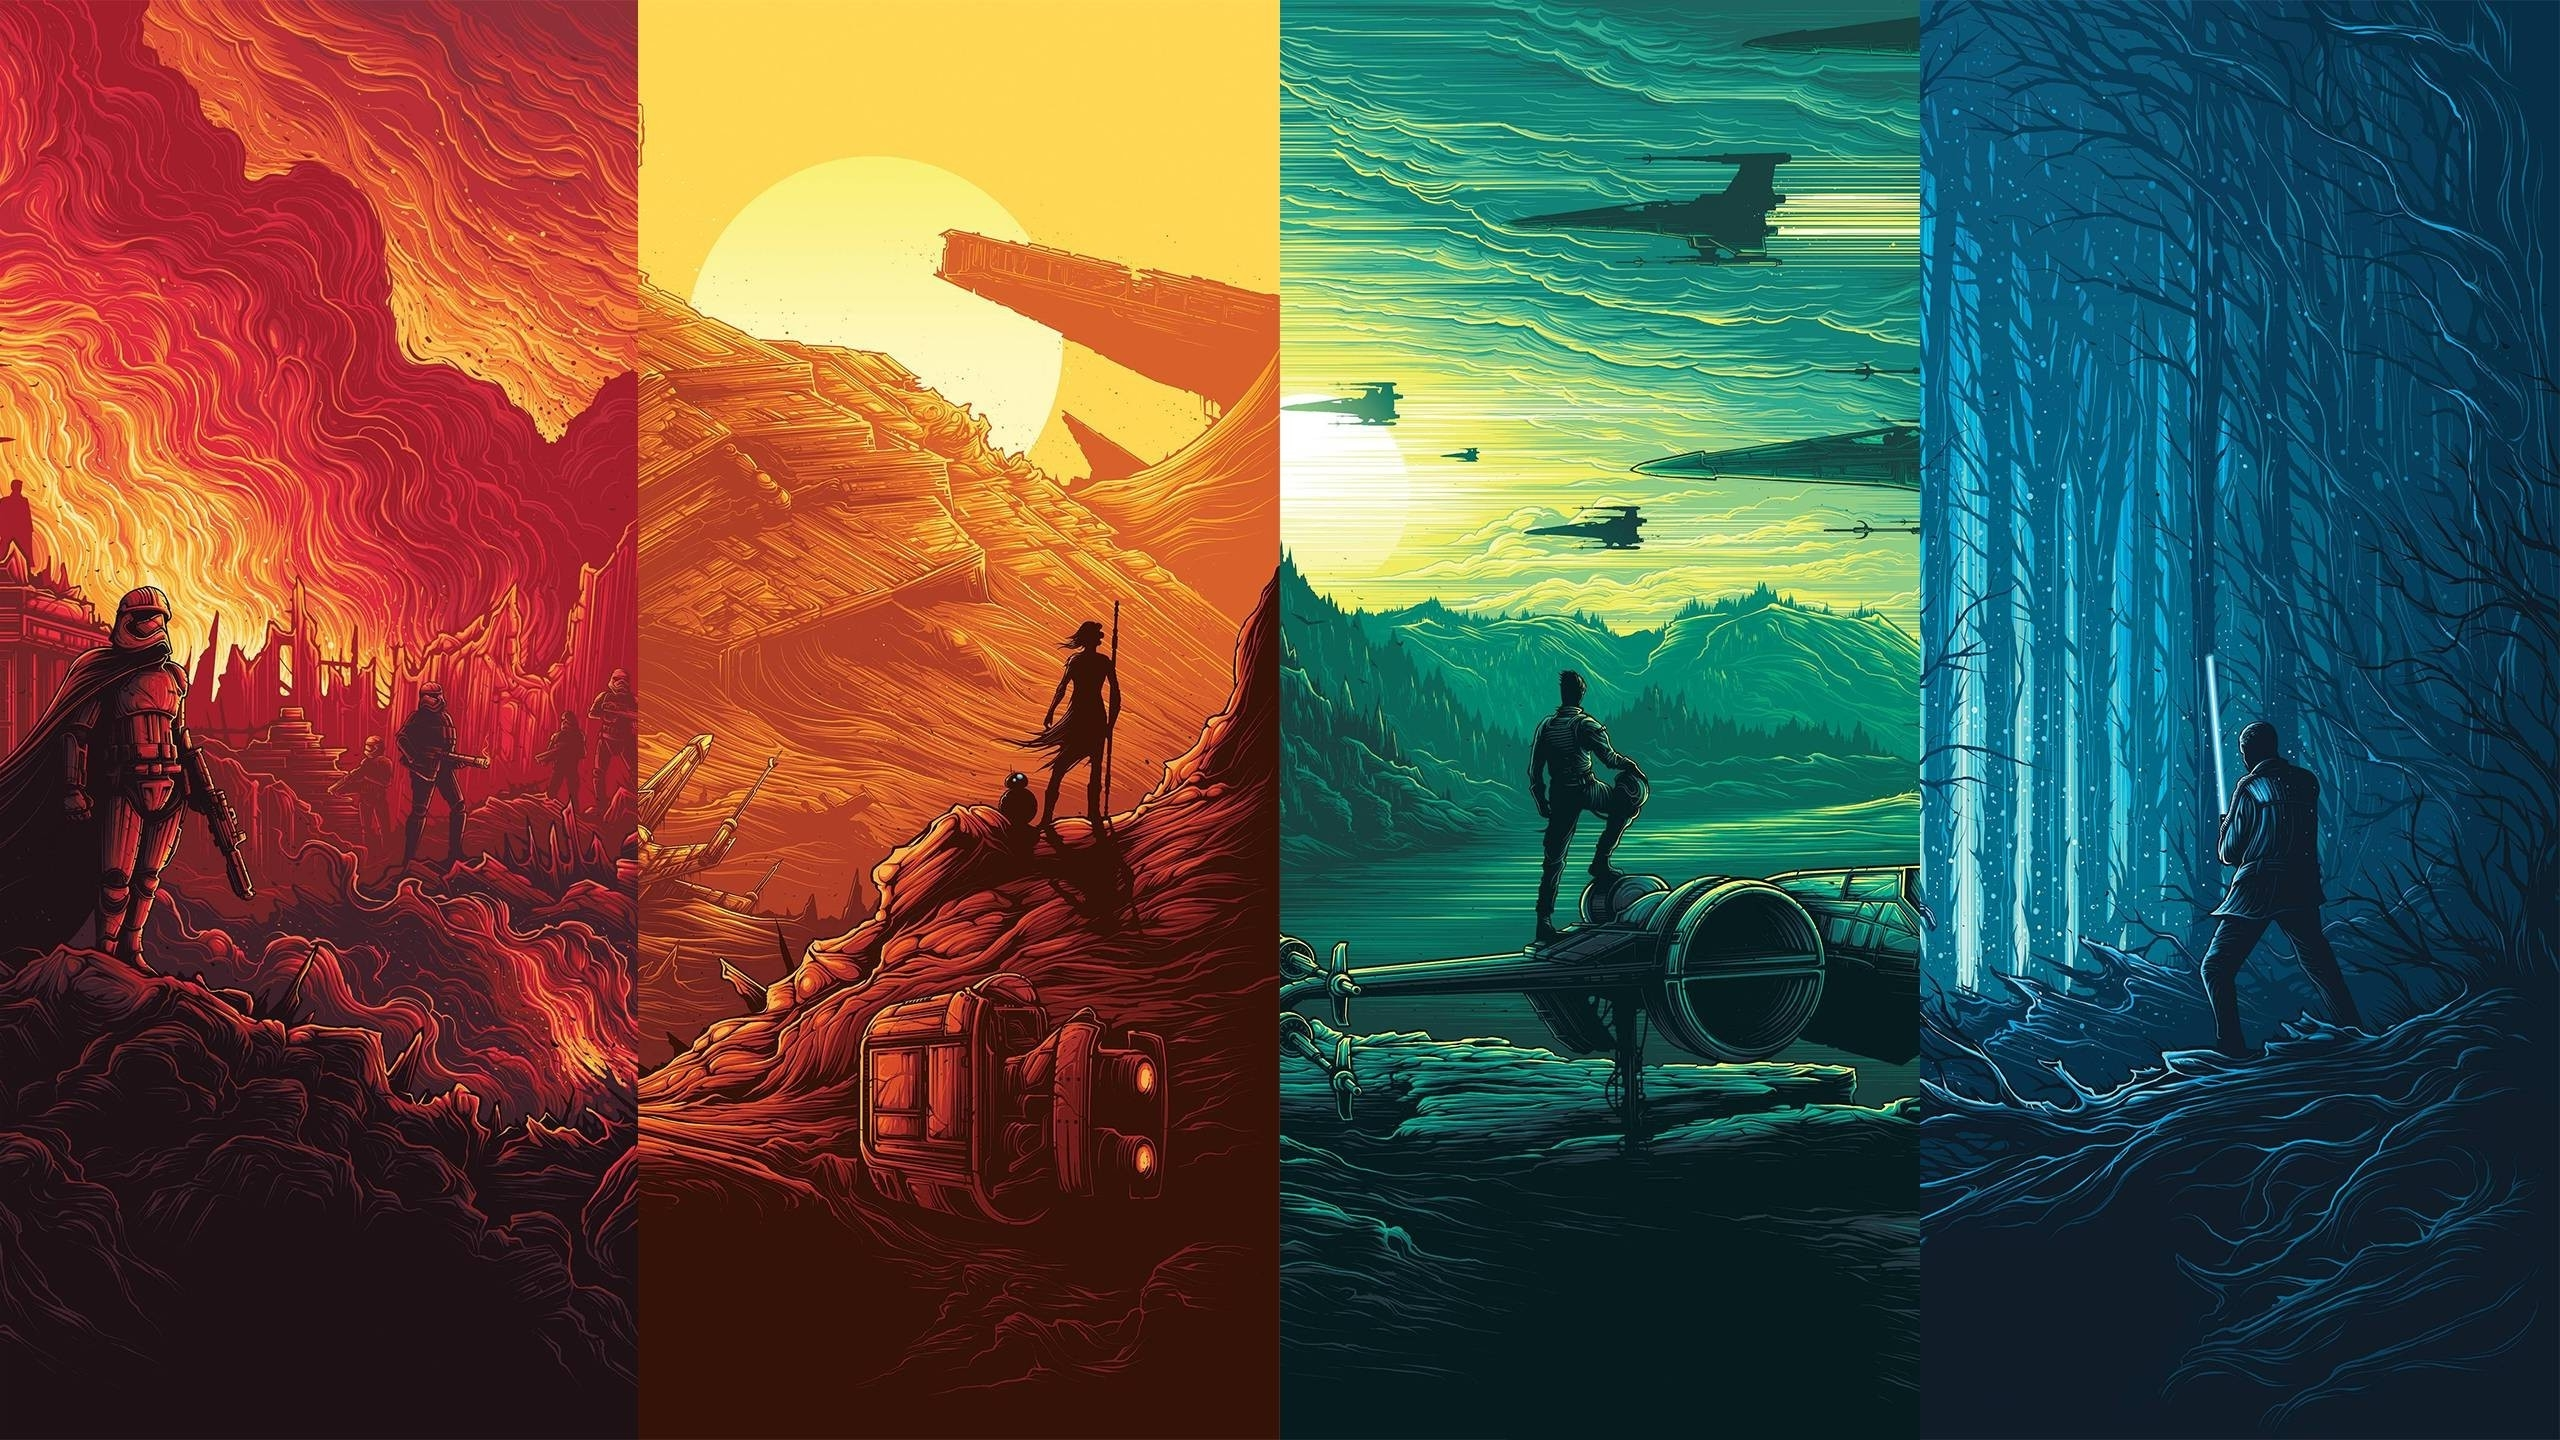 Star Wars IMAX Posters Wallpaper